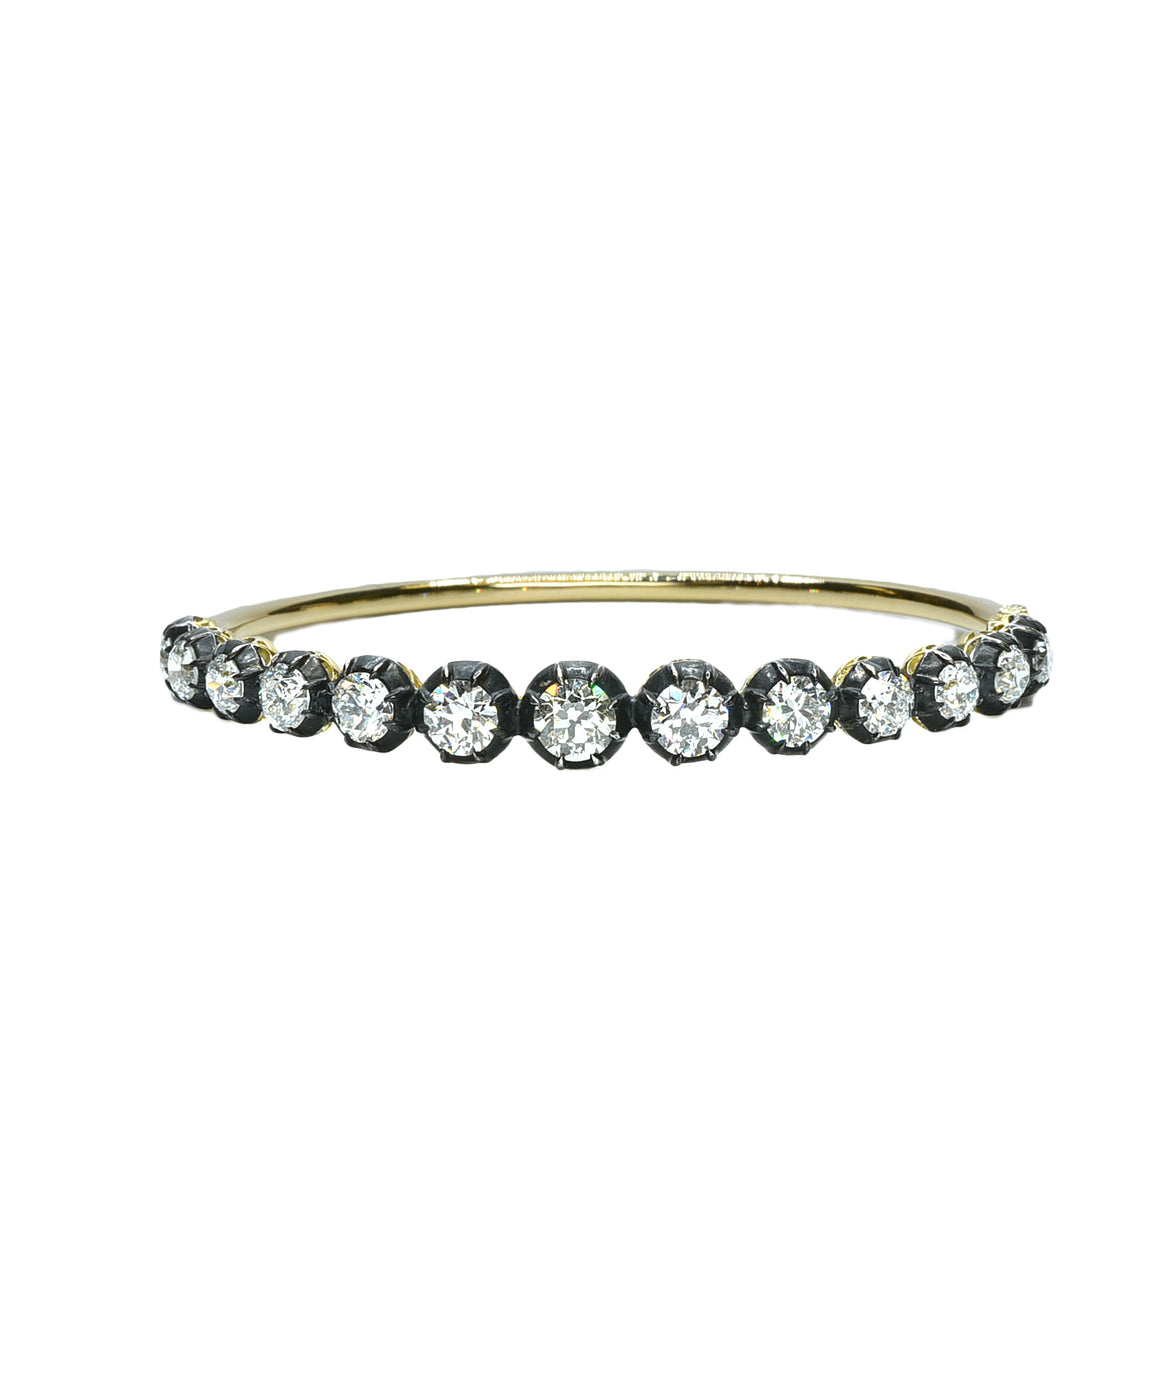 Bangle bracelet with Old European cut diamonds